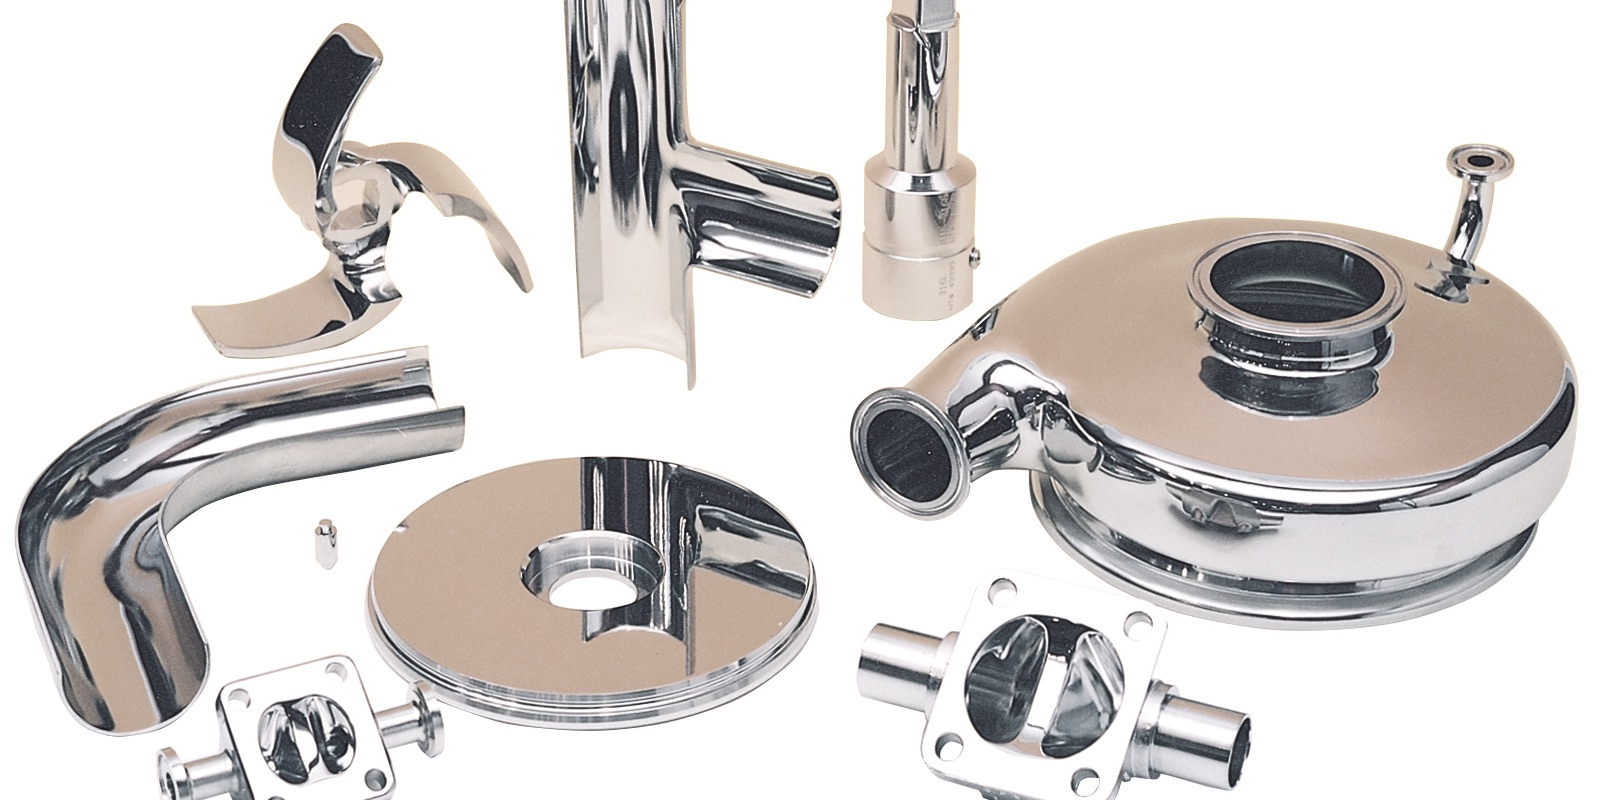 items that have been electropolished.